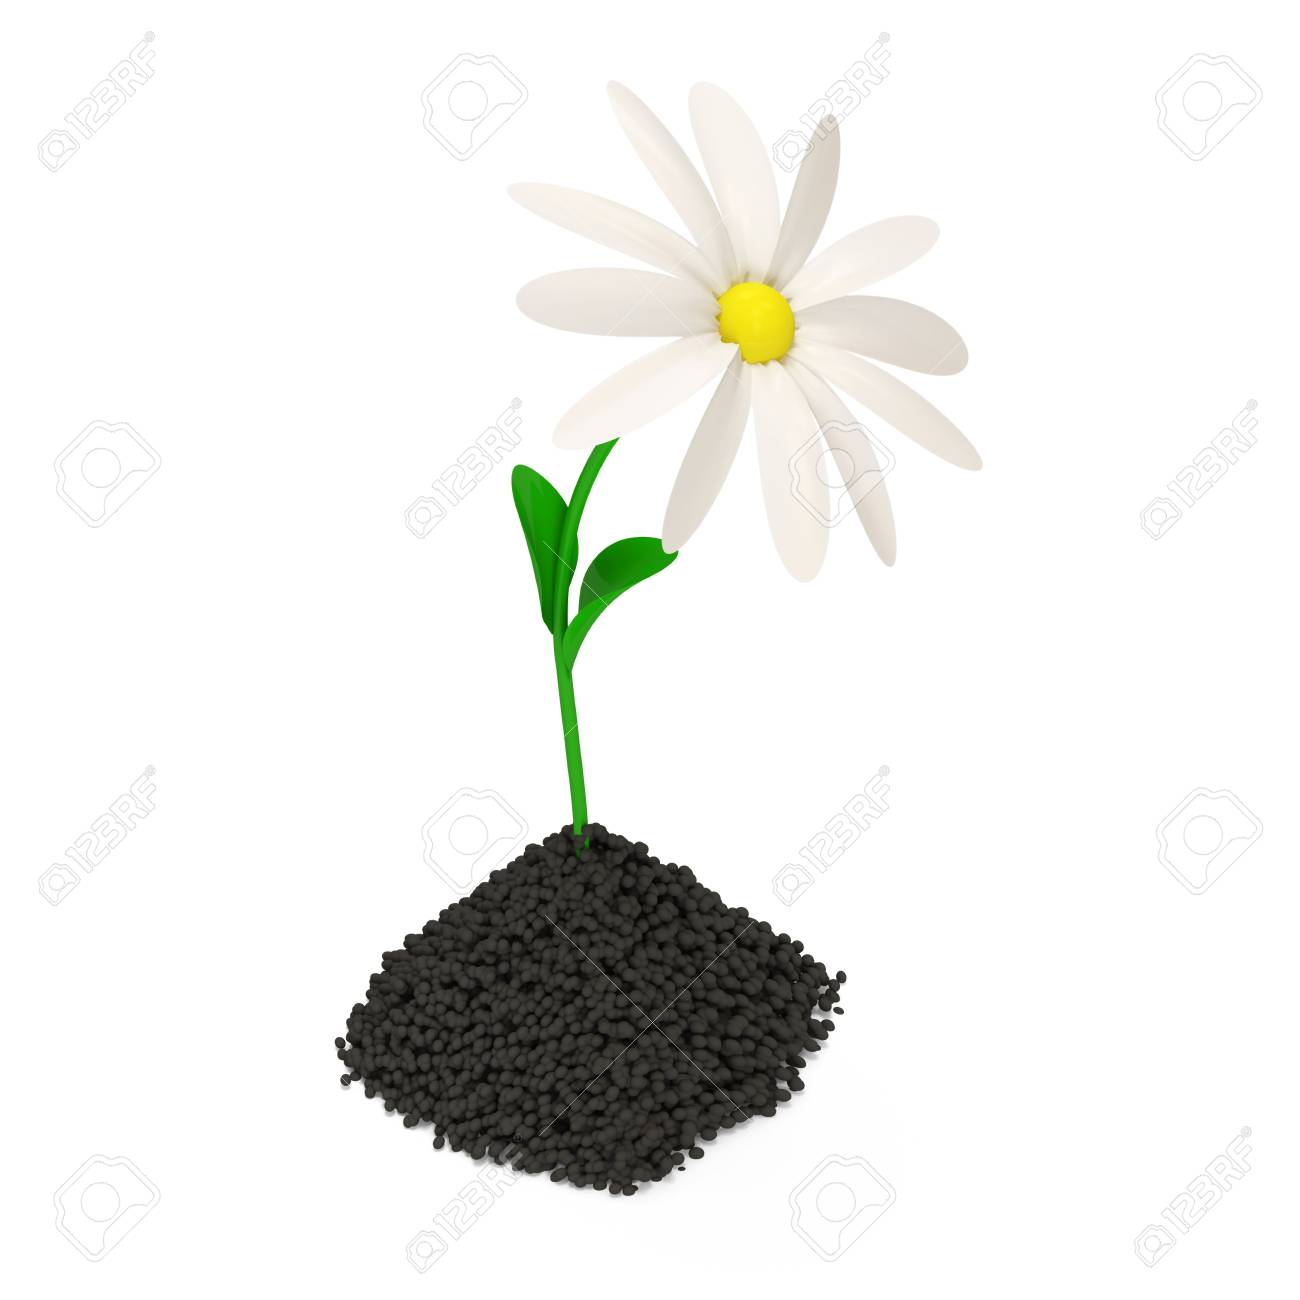 Fresh Chamomile Growing in Soil Stock Photo - 22872087